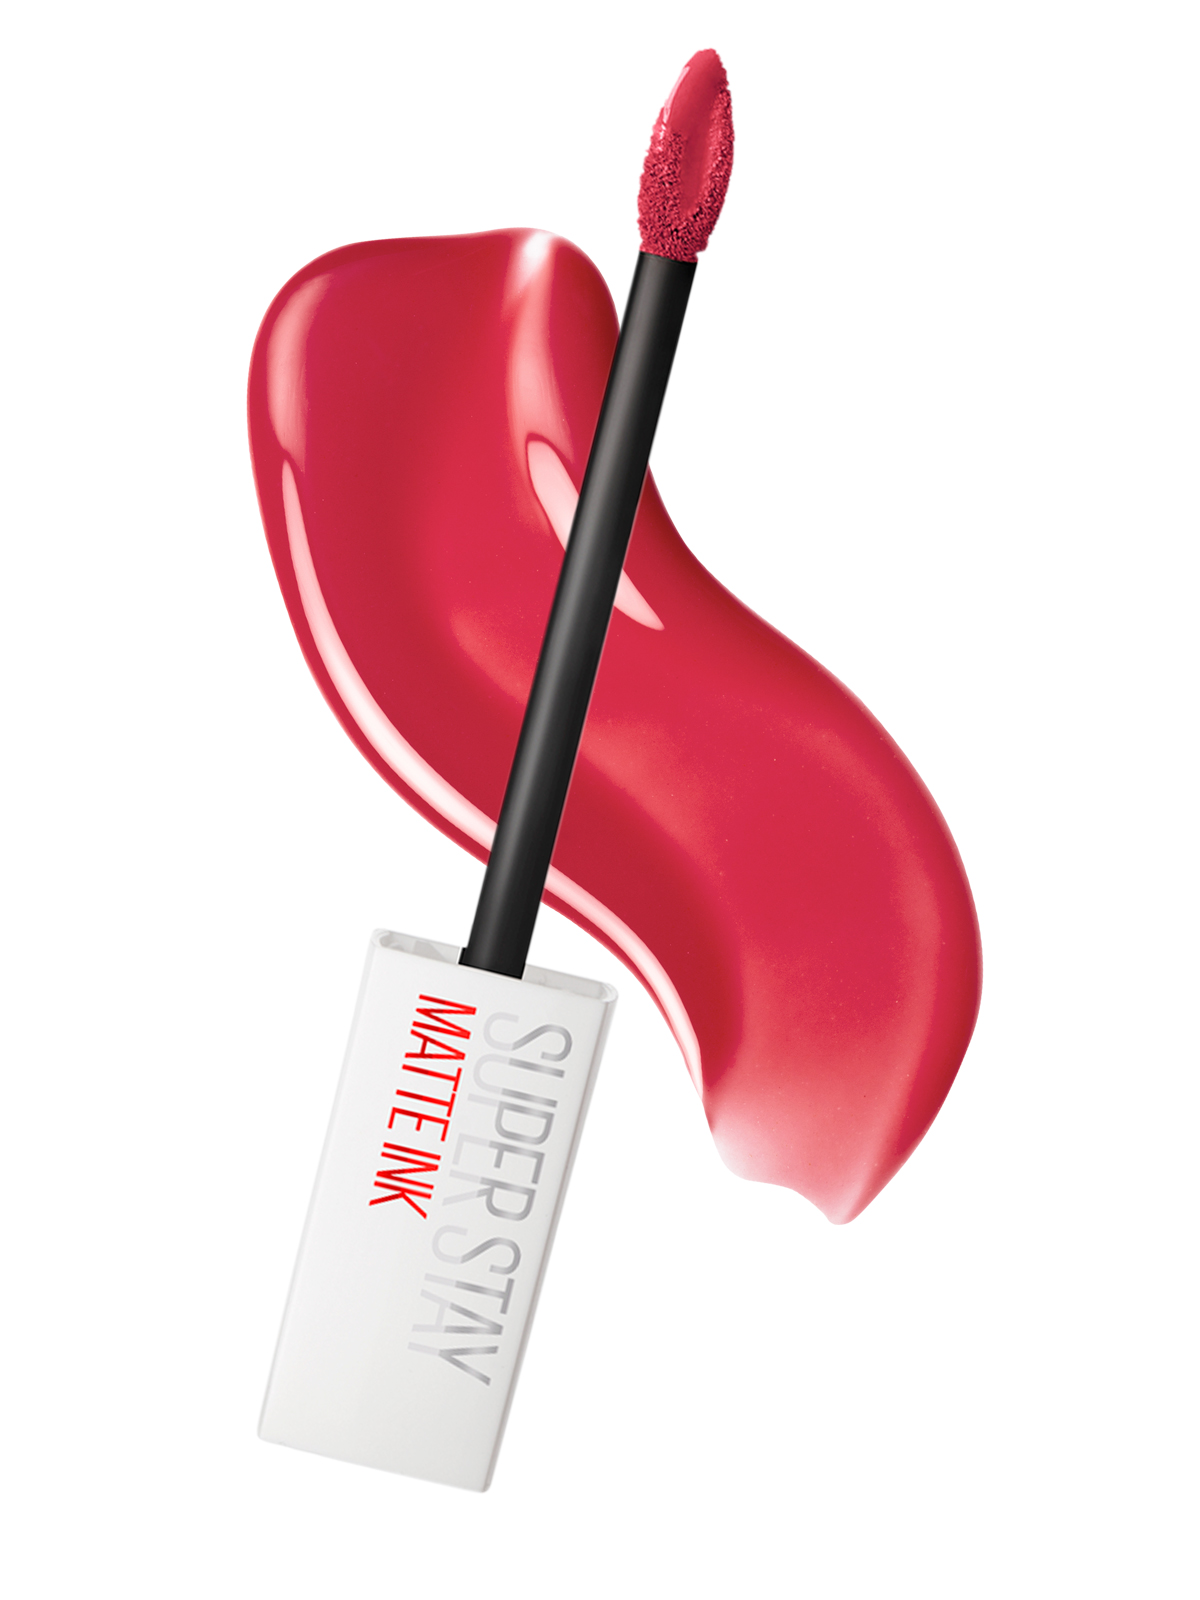 Maybelline New York Superstay Matte Ink in Pioneer